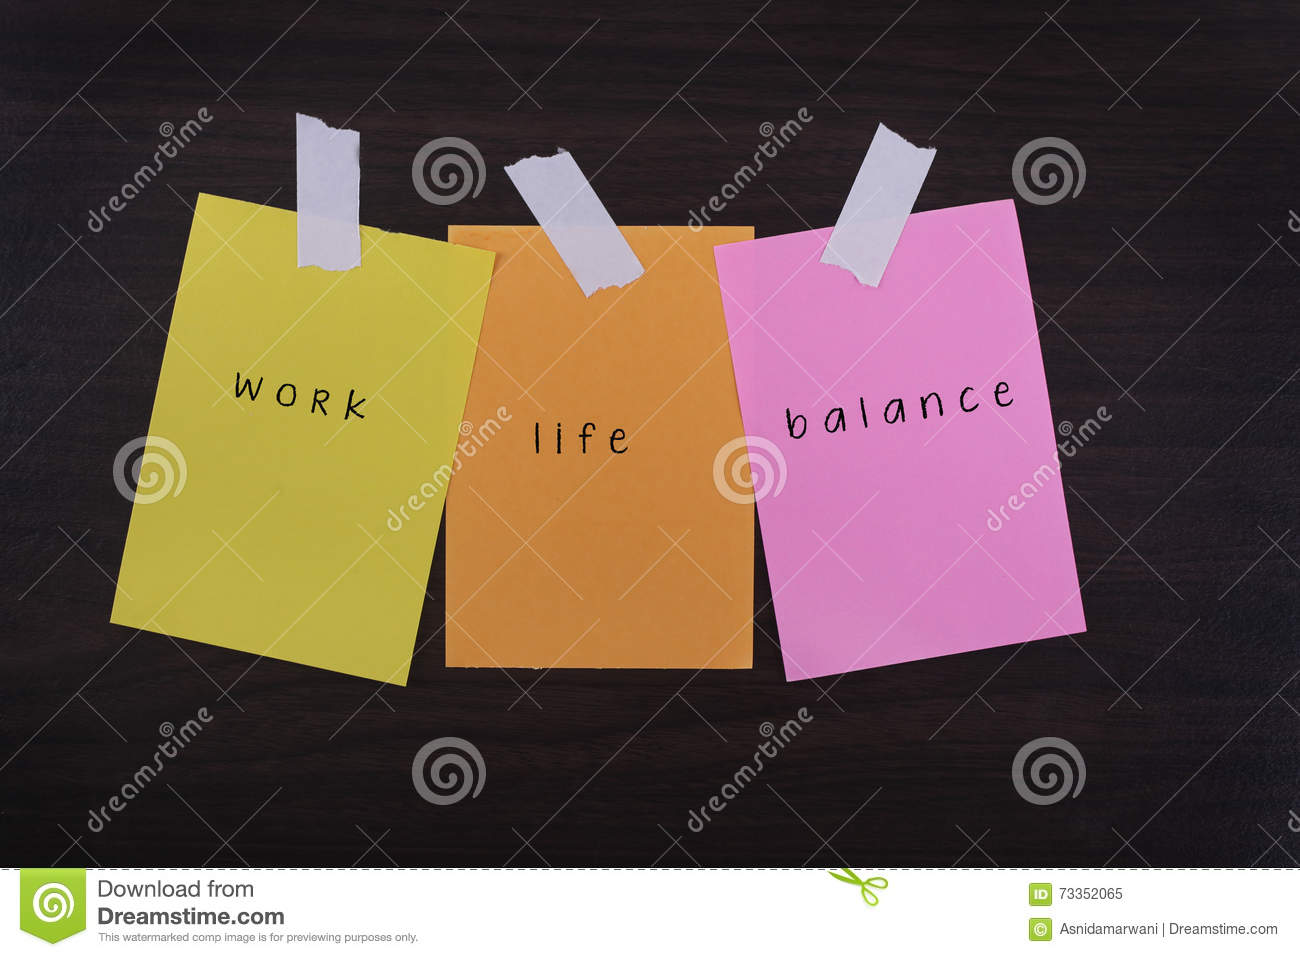 Work Life Balance Quote Word Quotes Of Work Life Balance On Colorful Sticky Papers Against